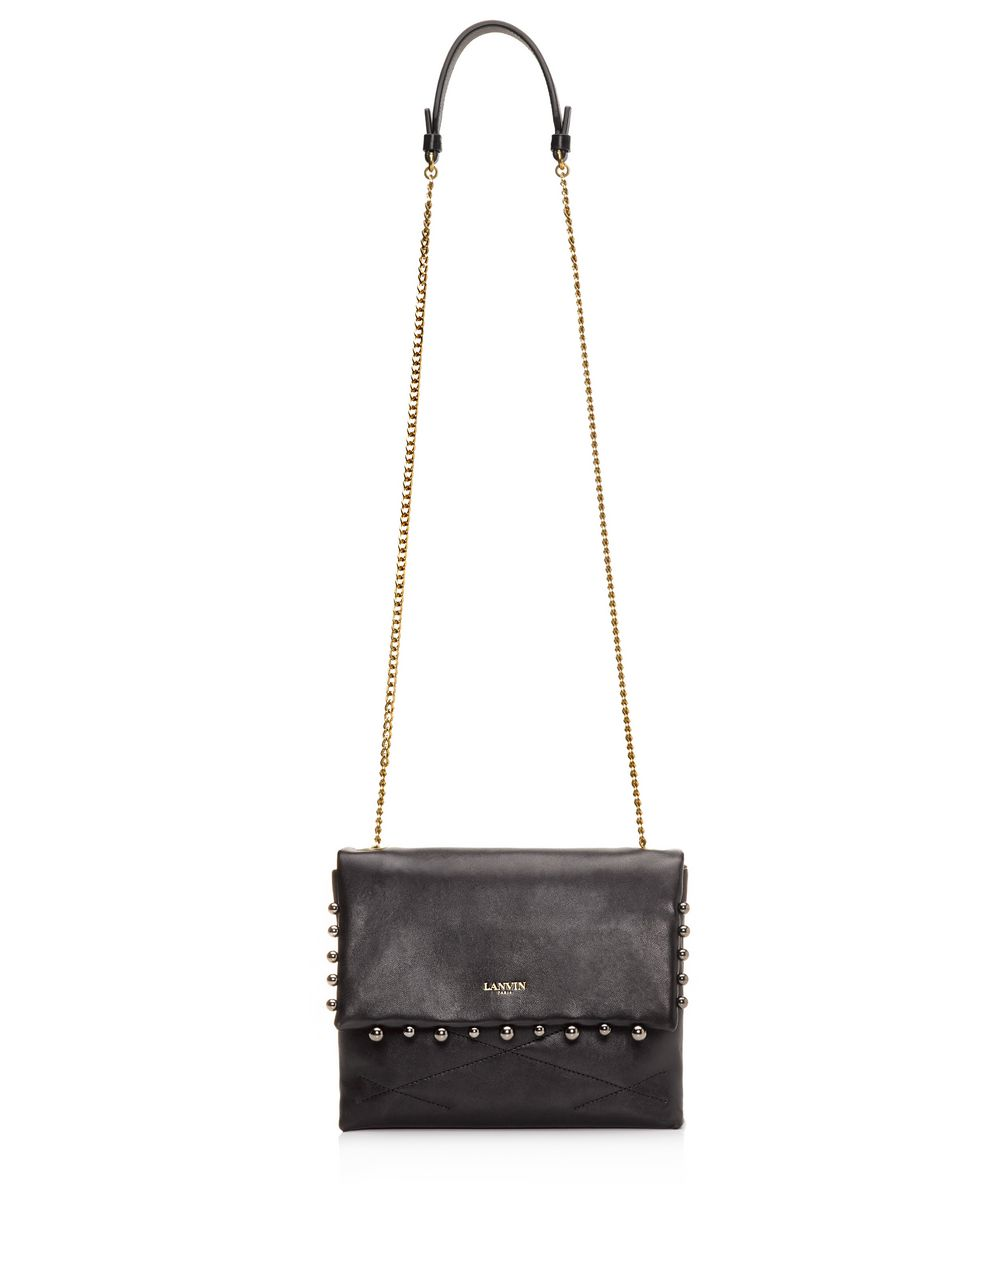 MINI SUGAR BEADS BAG  - Lanvin